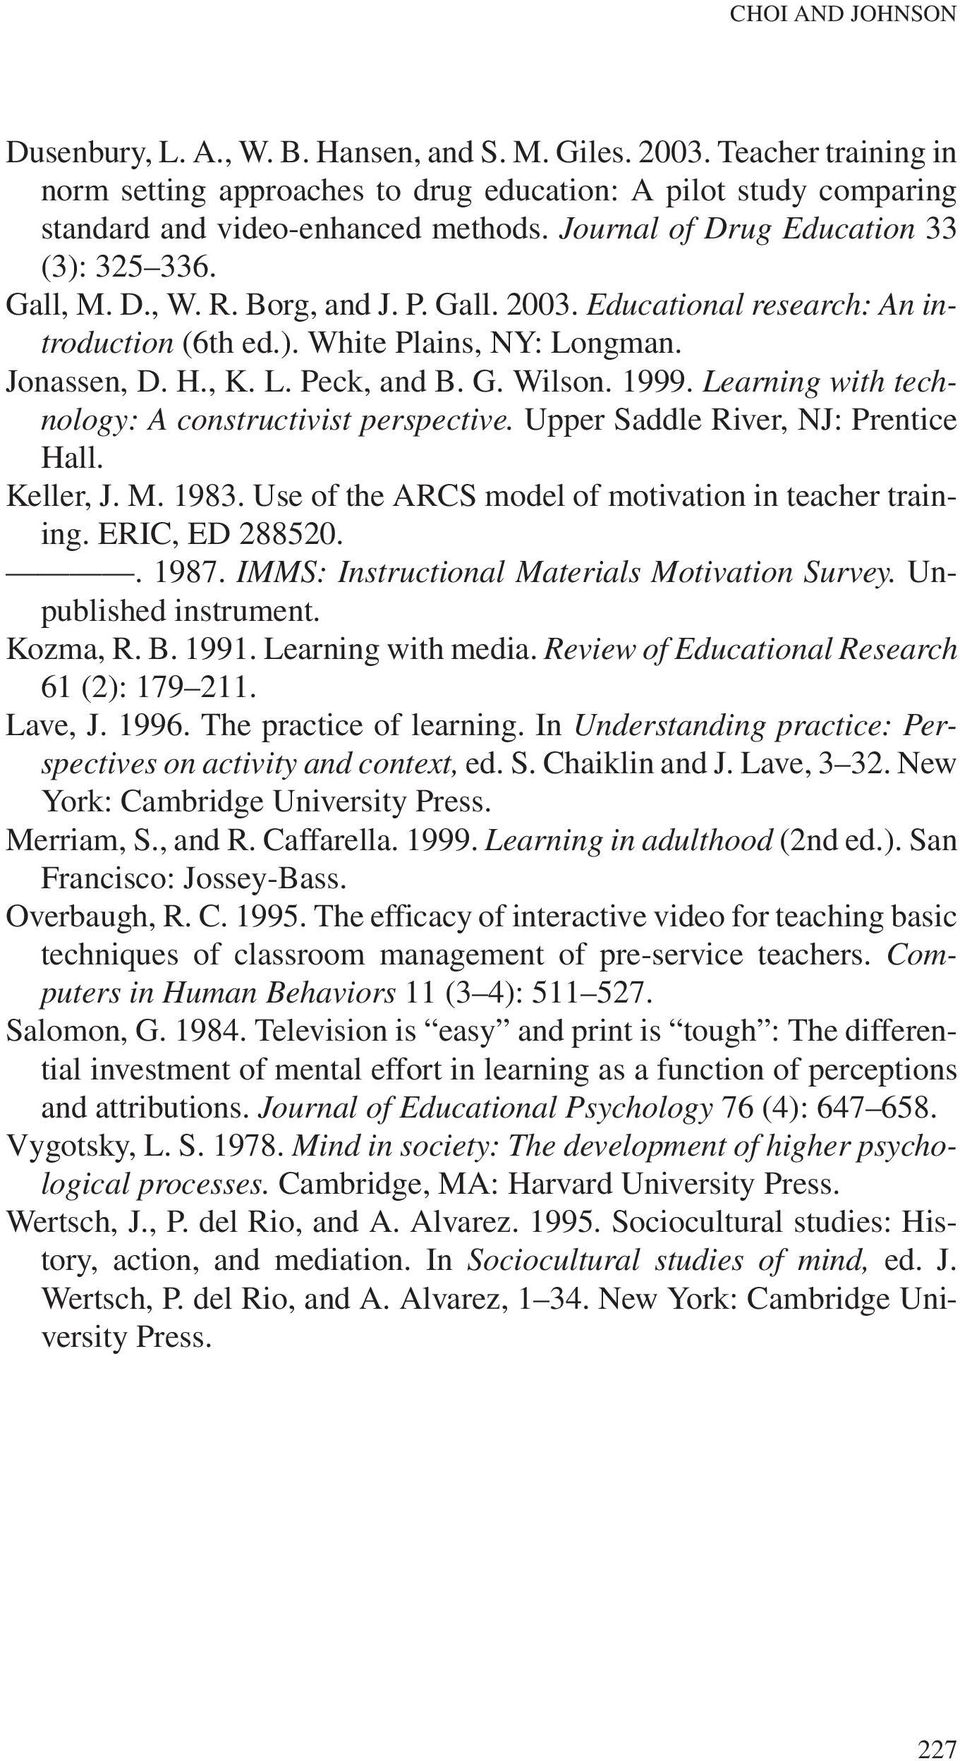 G. Wilson. 1999. Learning with technology: A constructivist perspective. Upper Saddle River, NJ: Prentice Hall. Keller, J. M. 1983. Use of the ARCS model of motivation in teacher training.